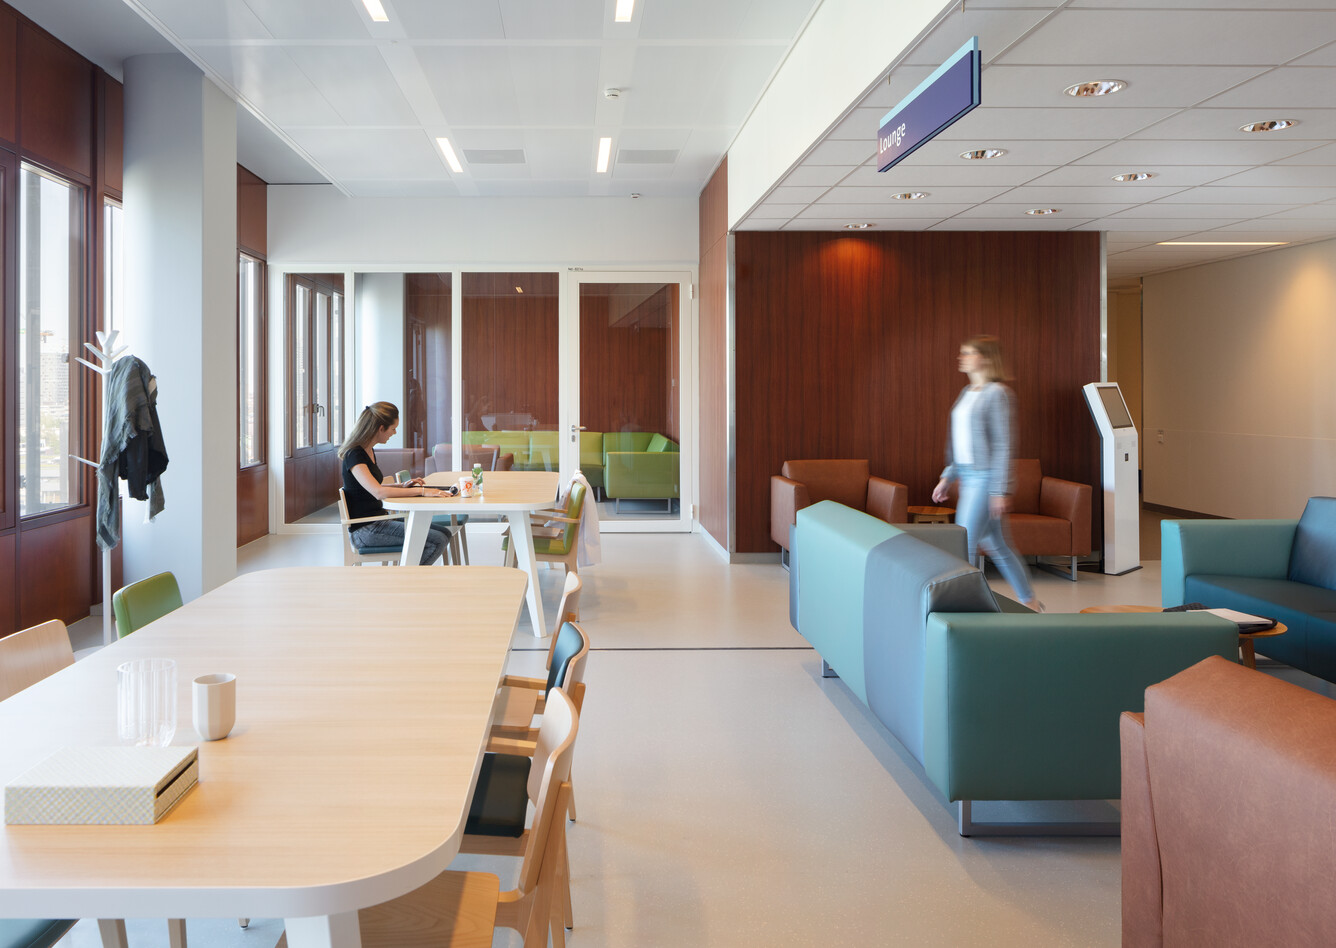 Royal Ahrend healthcare project Erasmus MC in Rotterdam 15